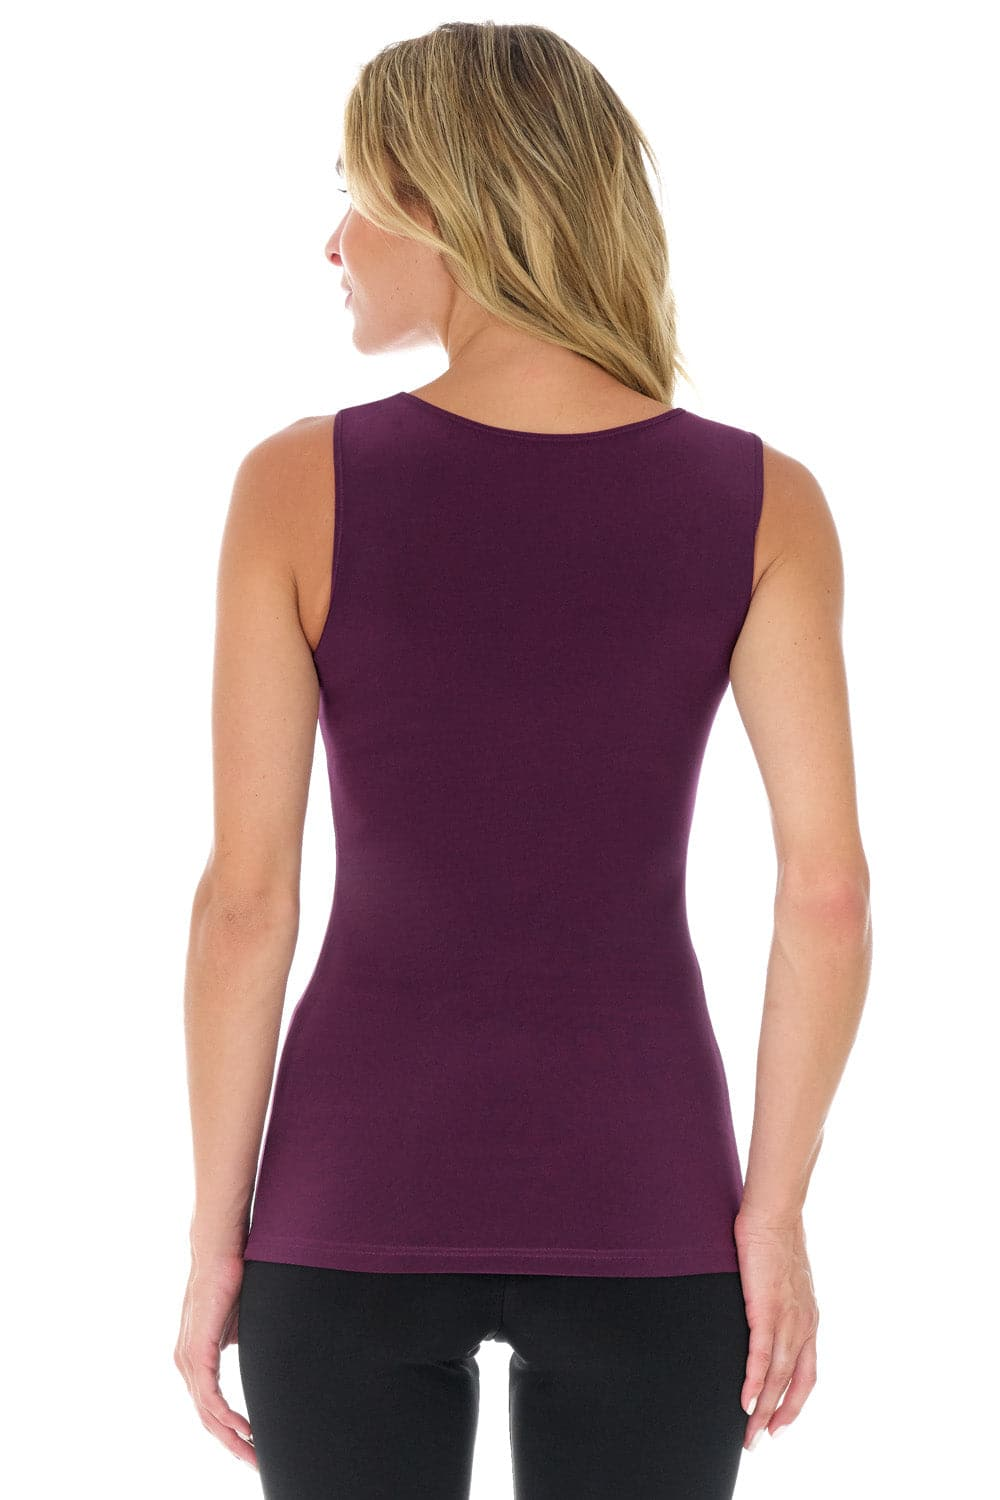 Travel in Rekucci Style - Women's Essential Knit Scoop Neck Sleeveless Top